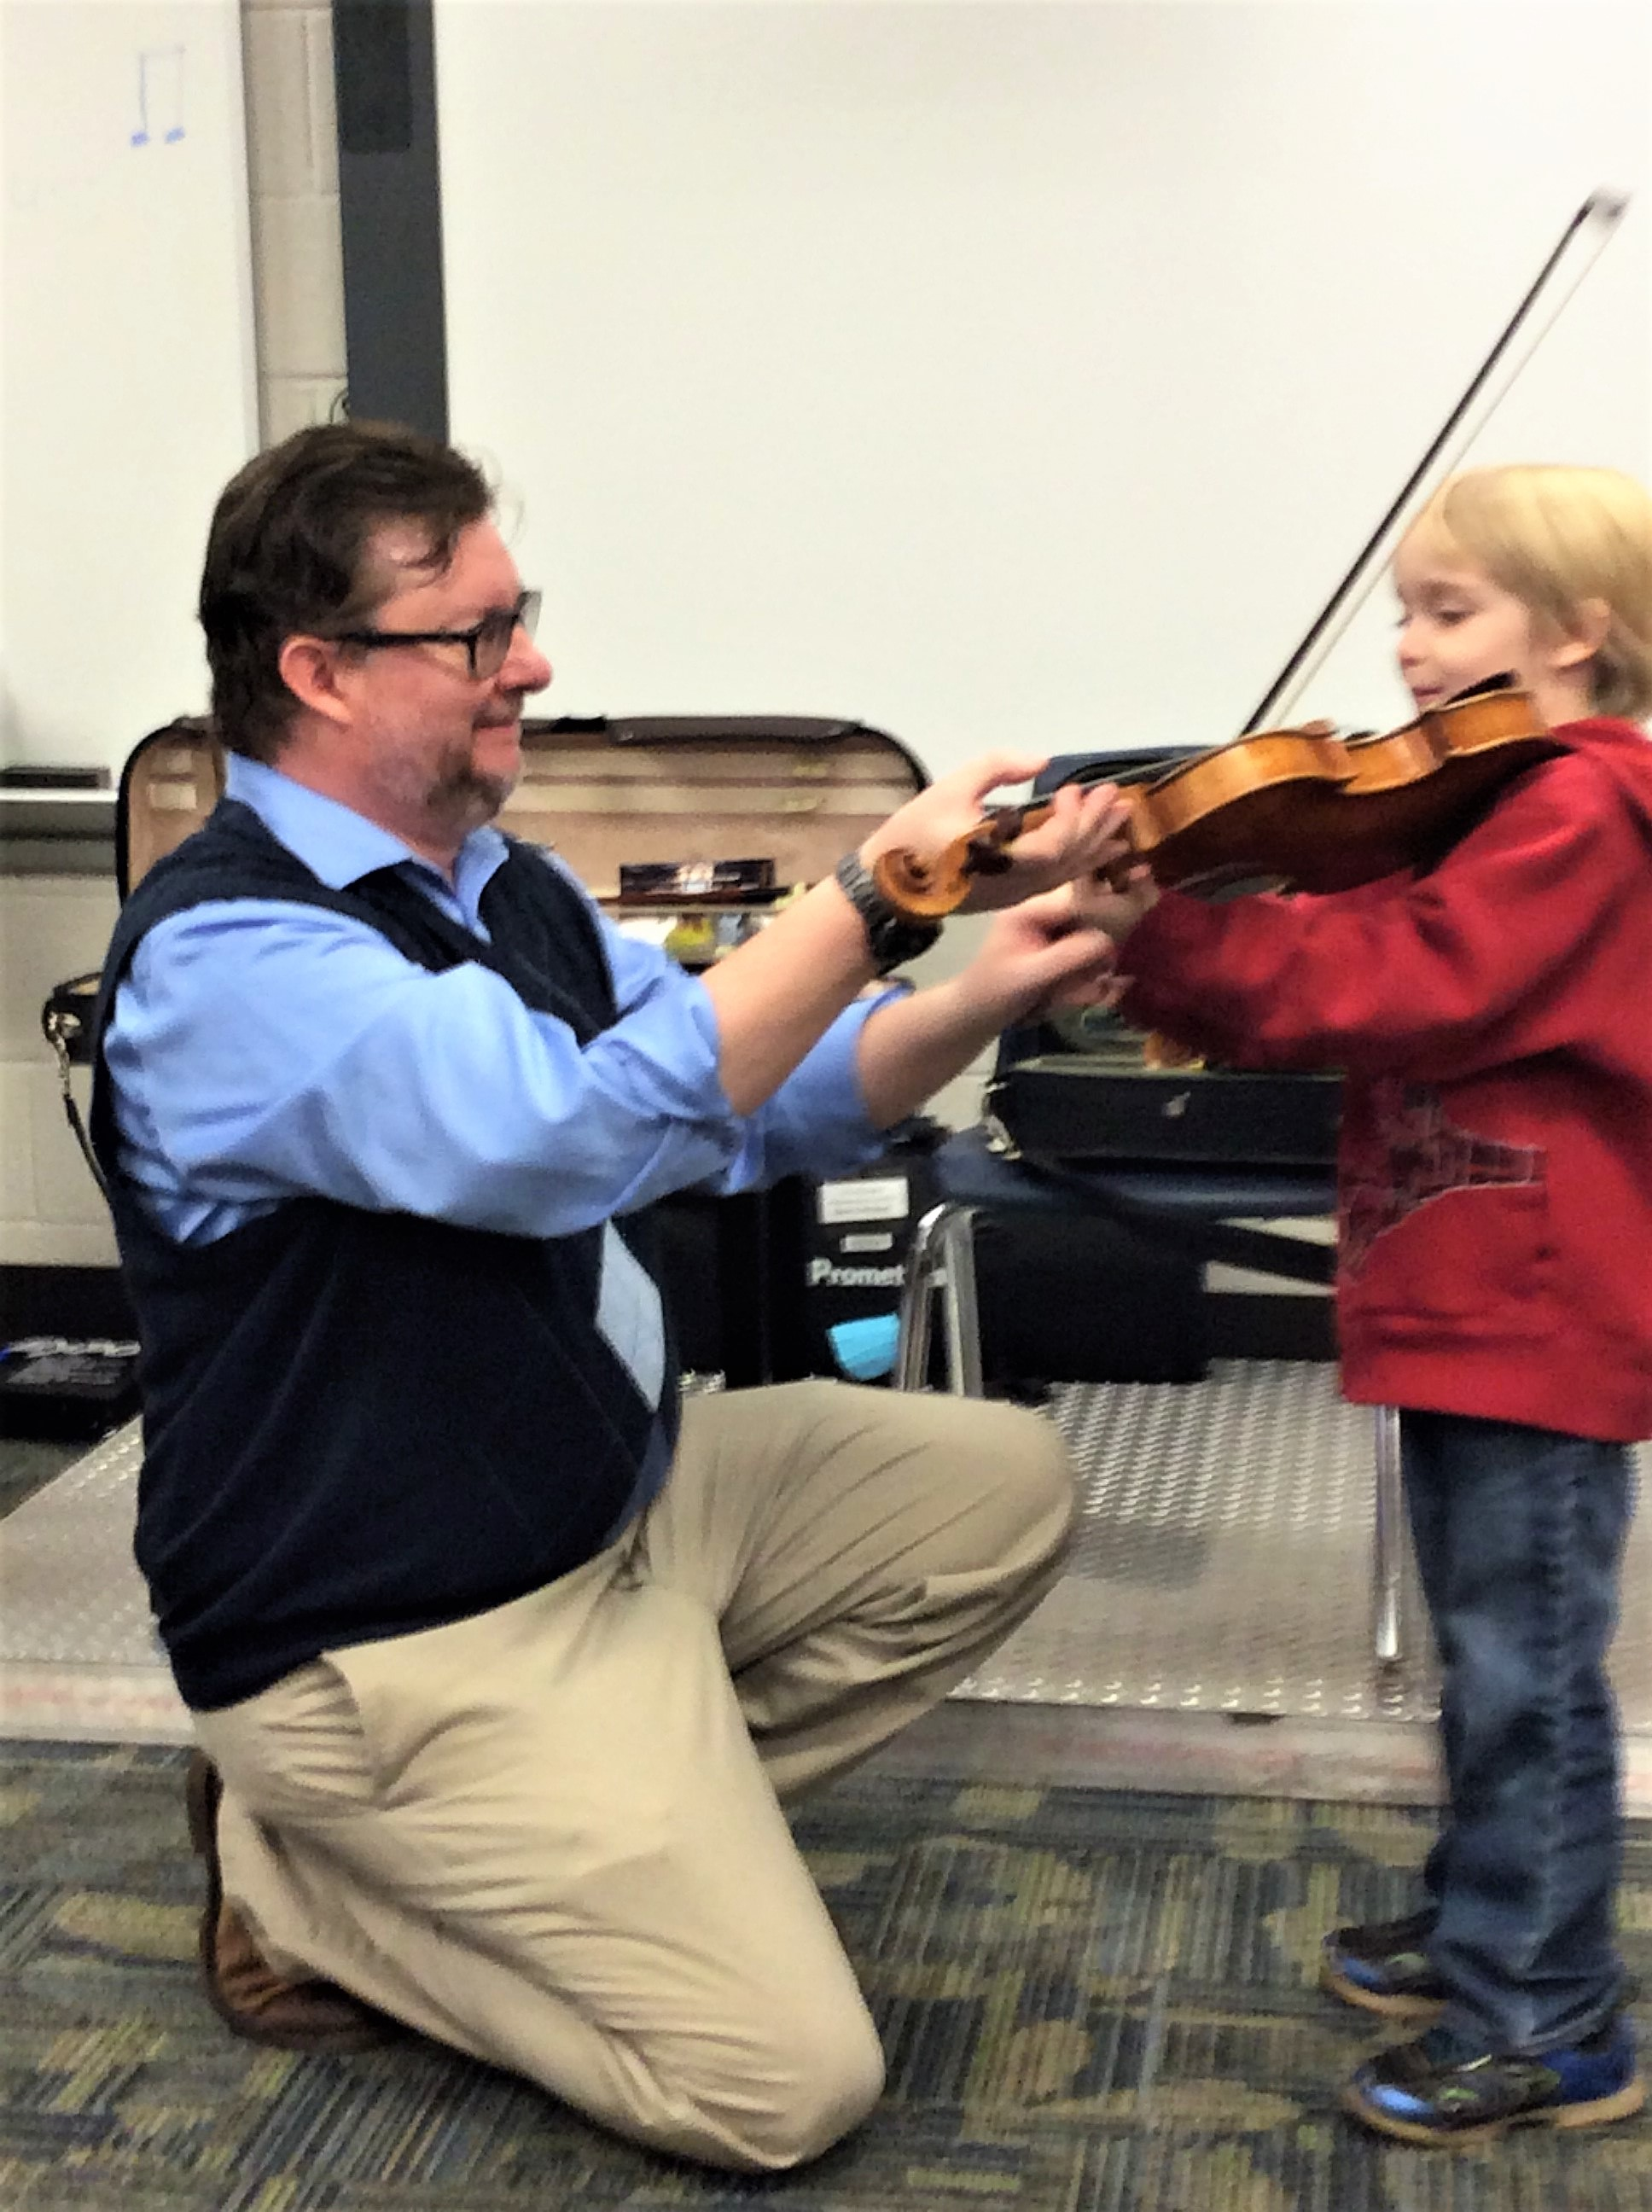 Parents and Violin Lessons – How to Help